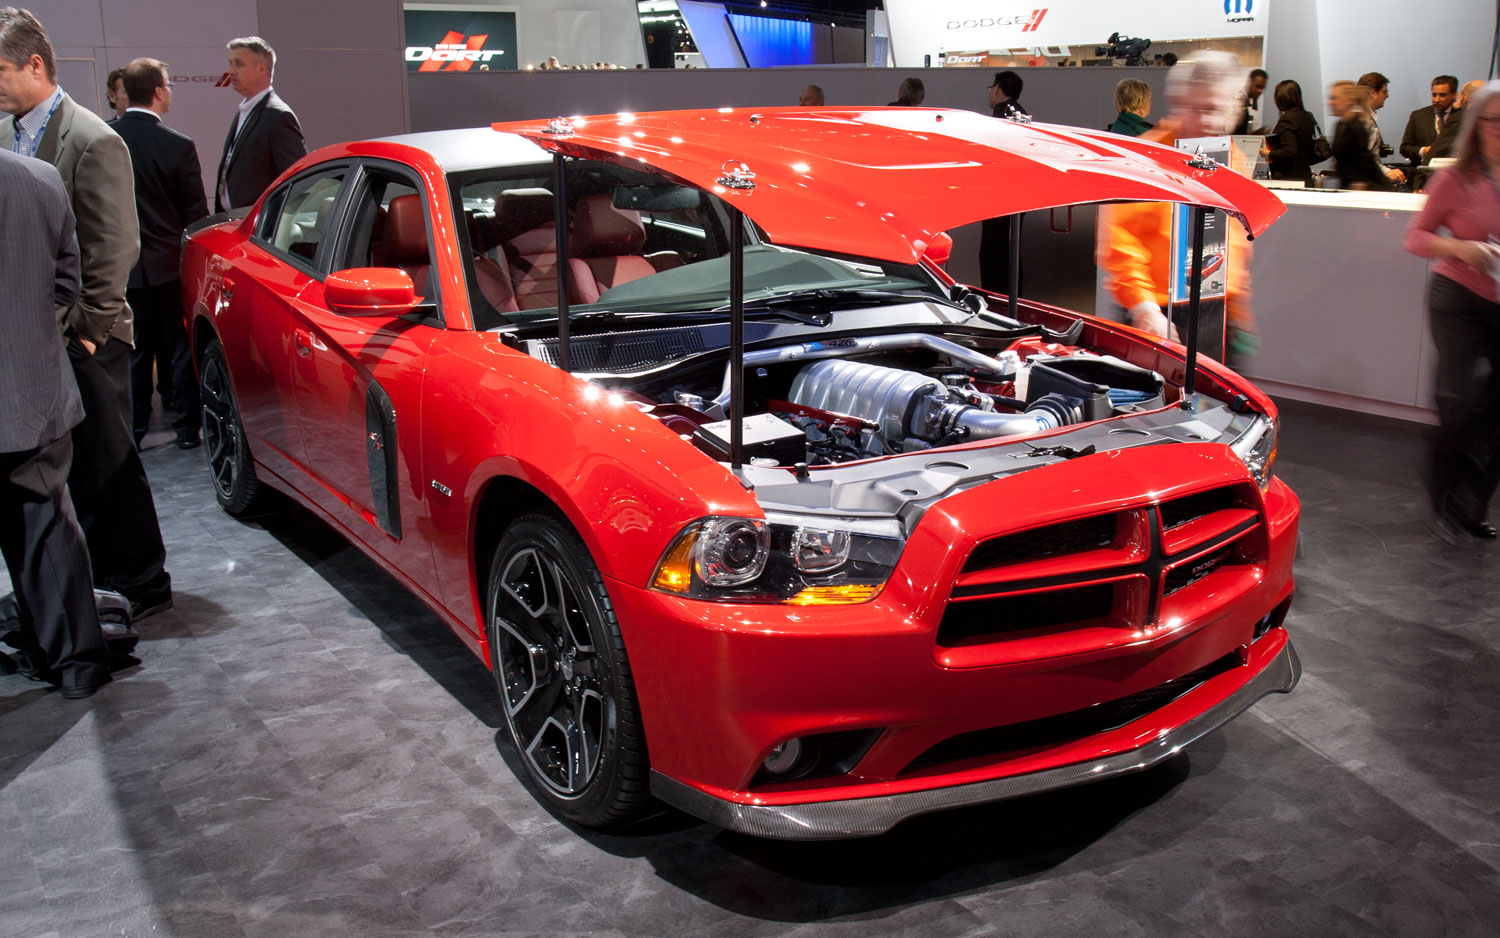 2012 Dodge Charger Redline Front Three Quarters View12